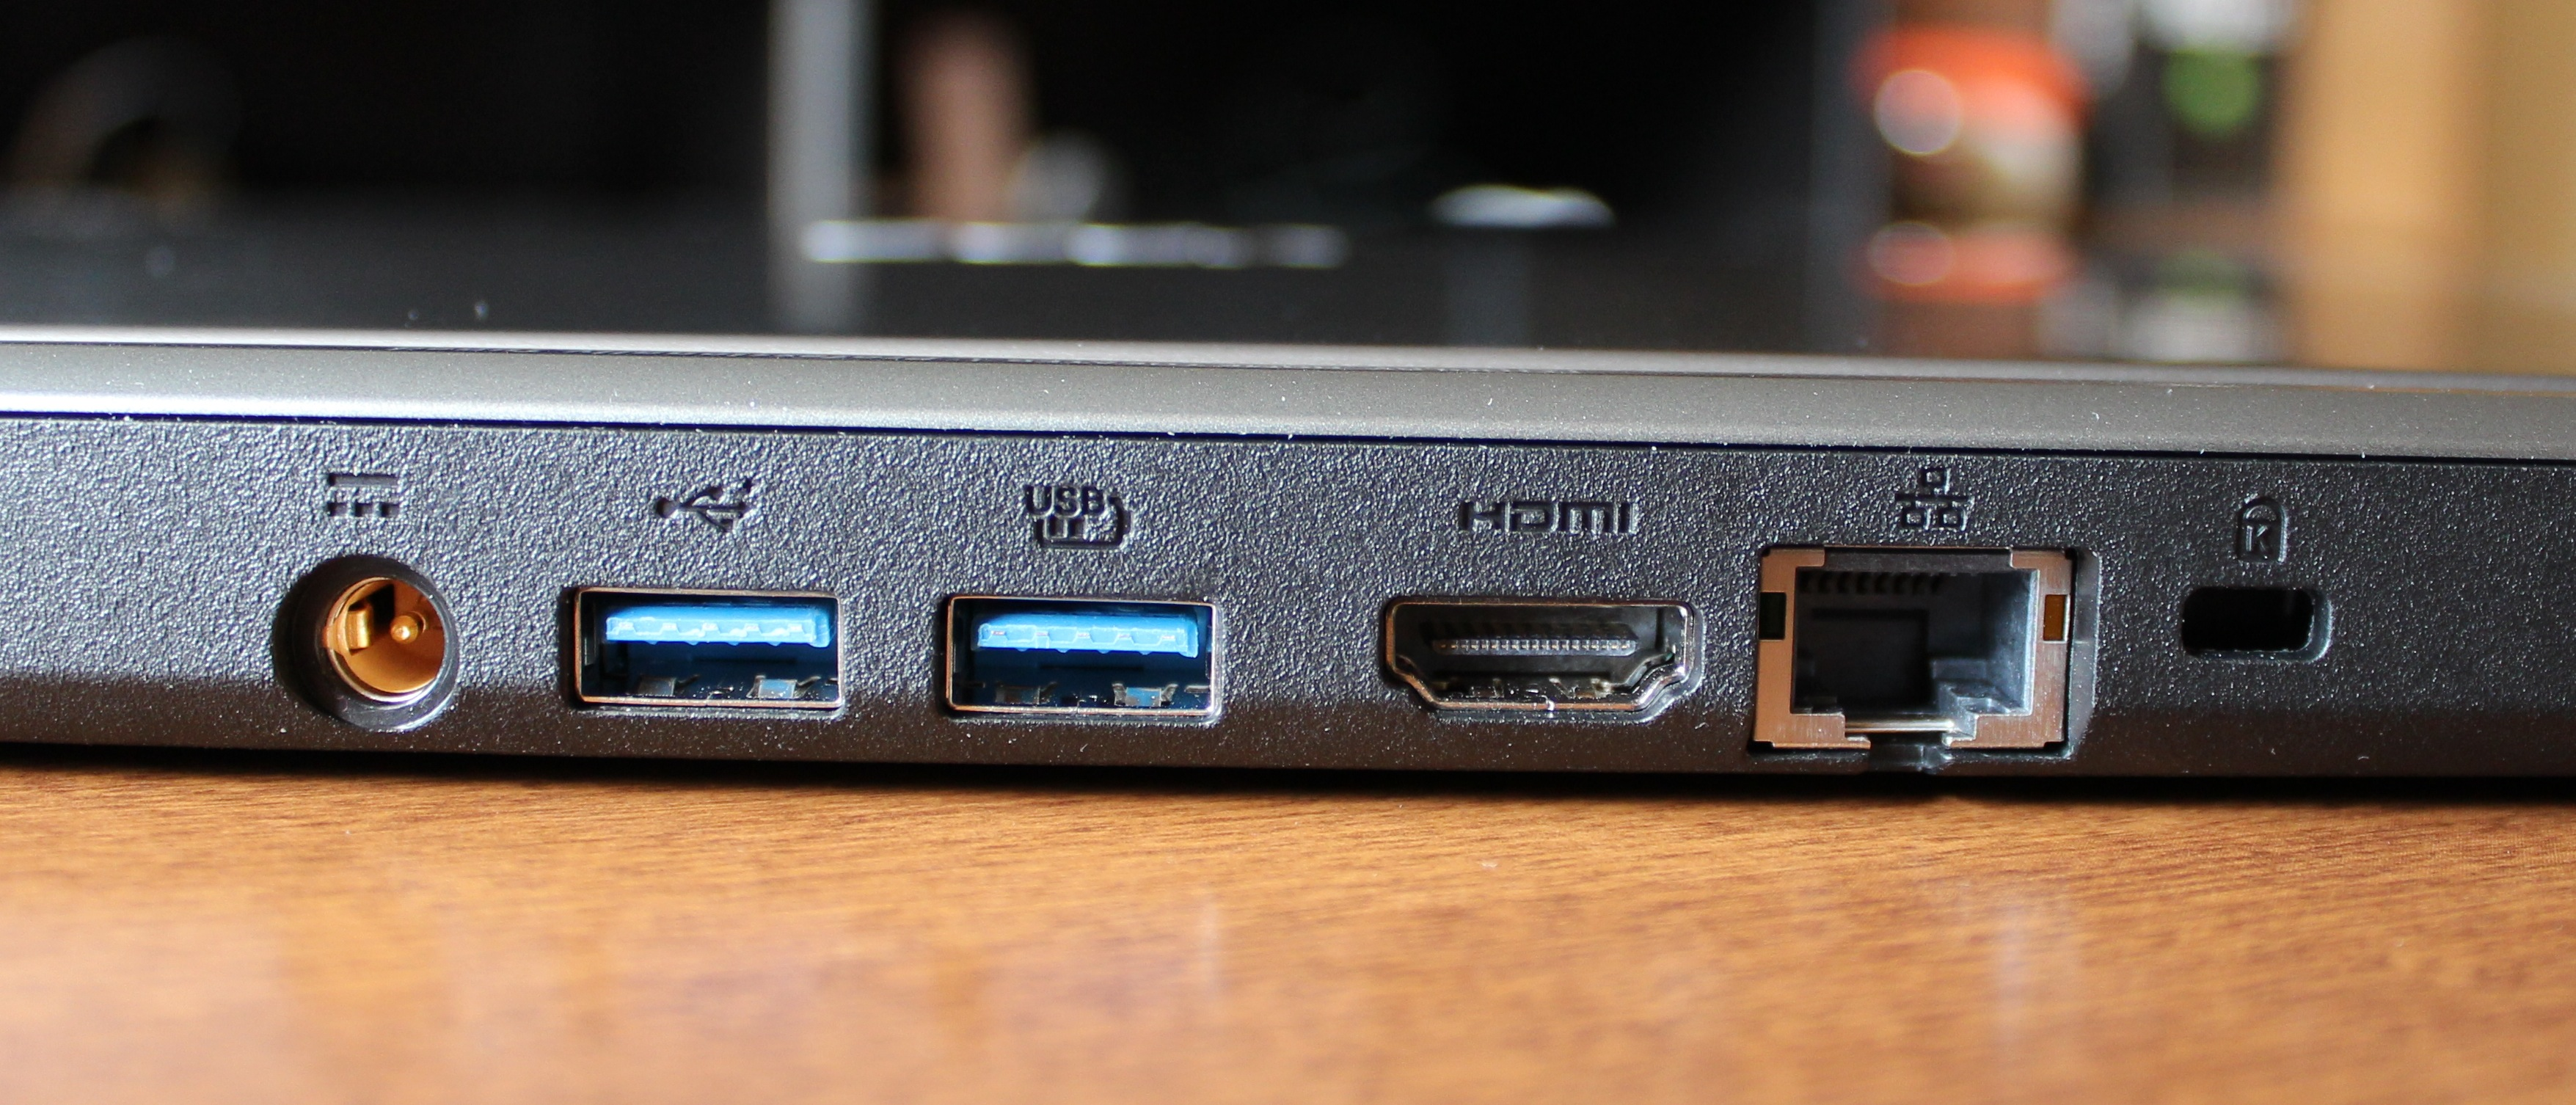 how to put a different screen with hdmi on laptop